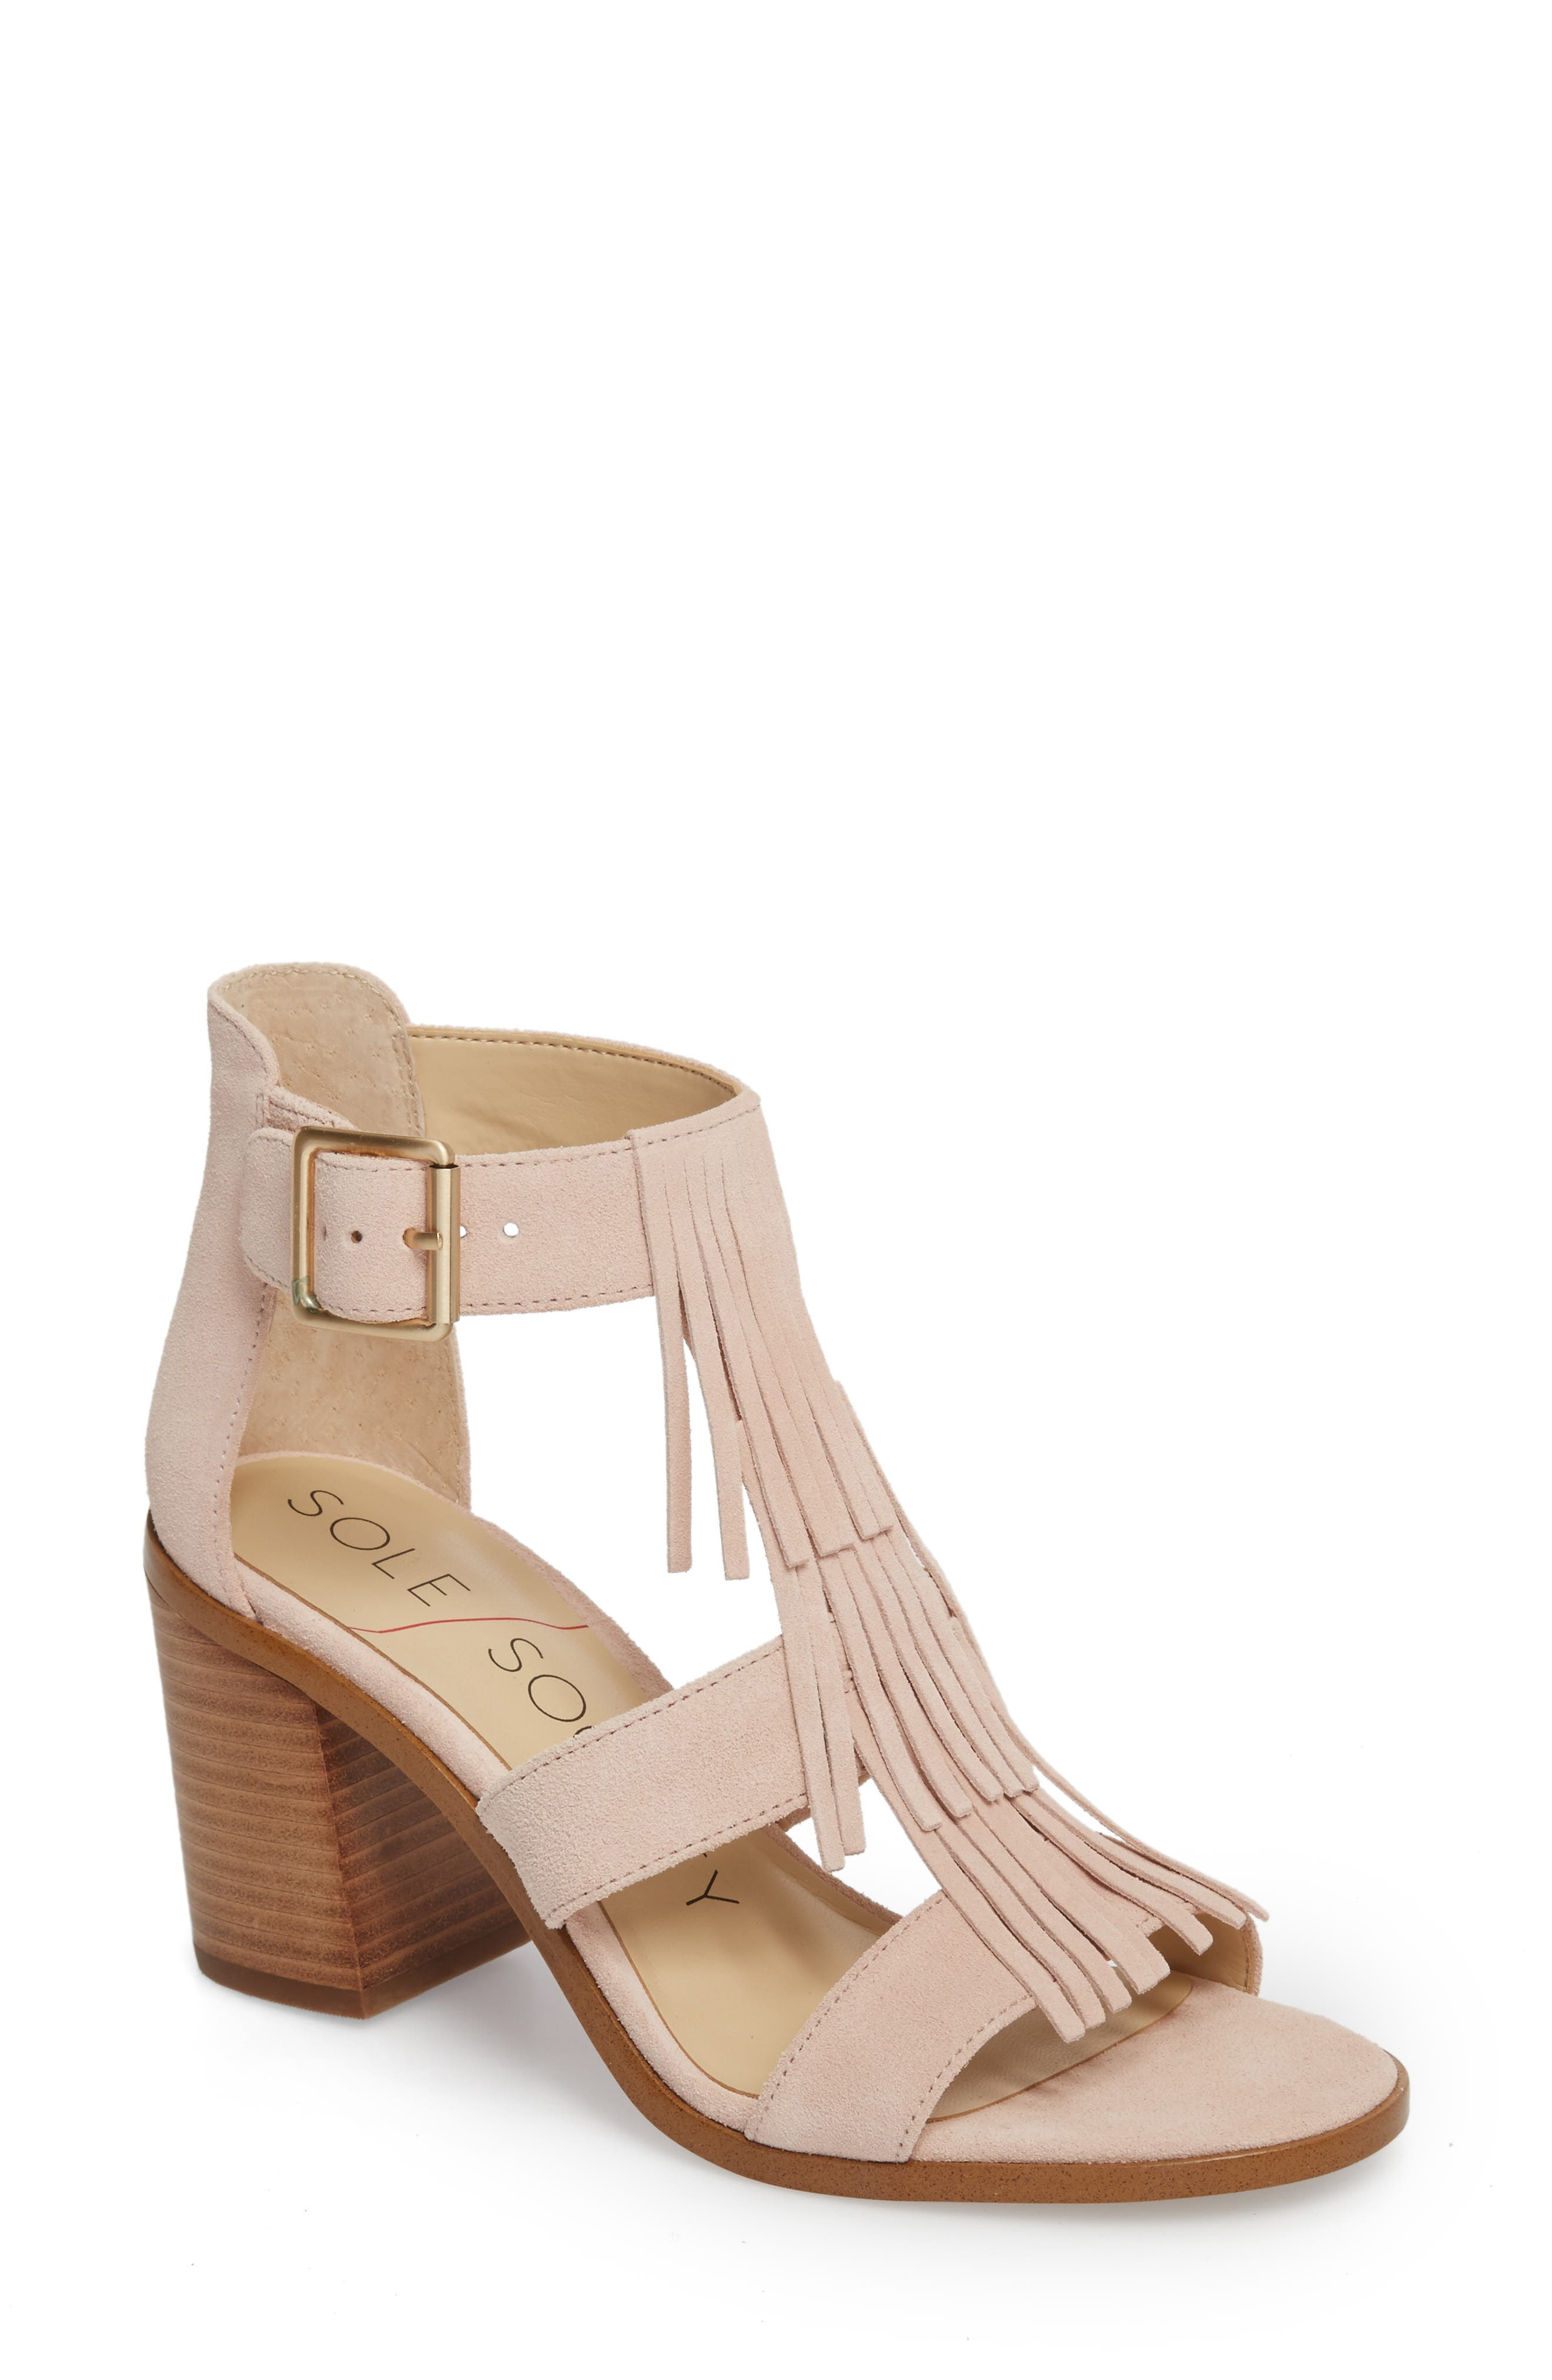 SOLE SOCIETY, 'Delilah' Fringe Sandal, Main thumbnail 1, color, SPRING BLUSH COW SUEDE